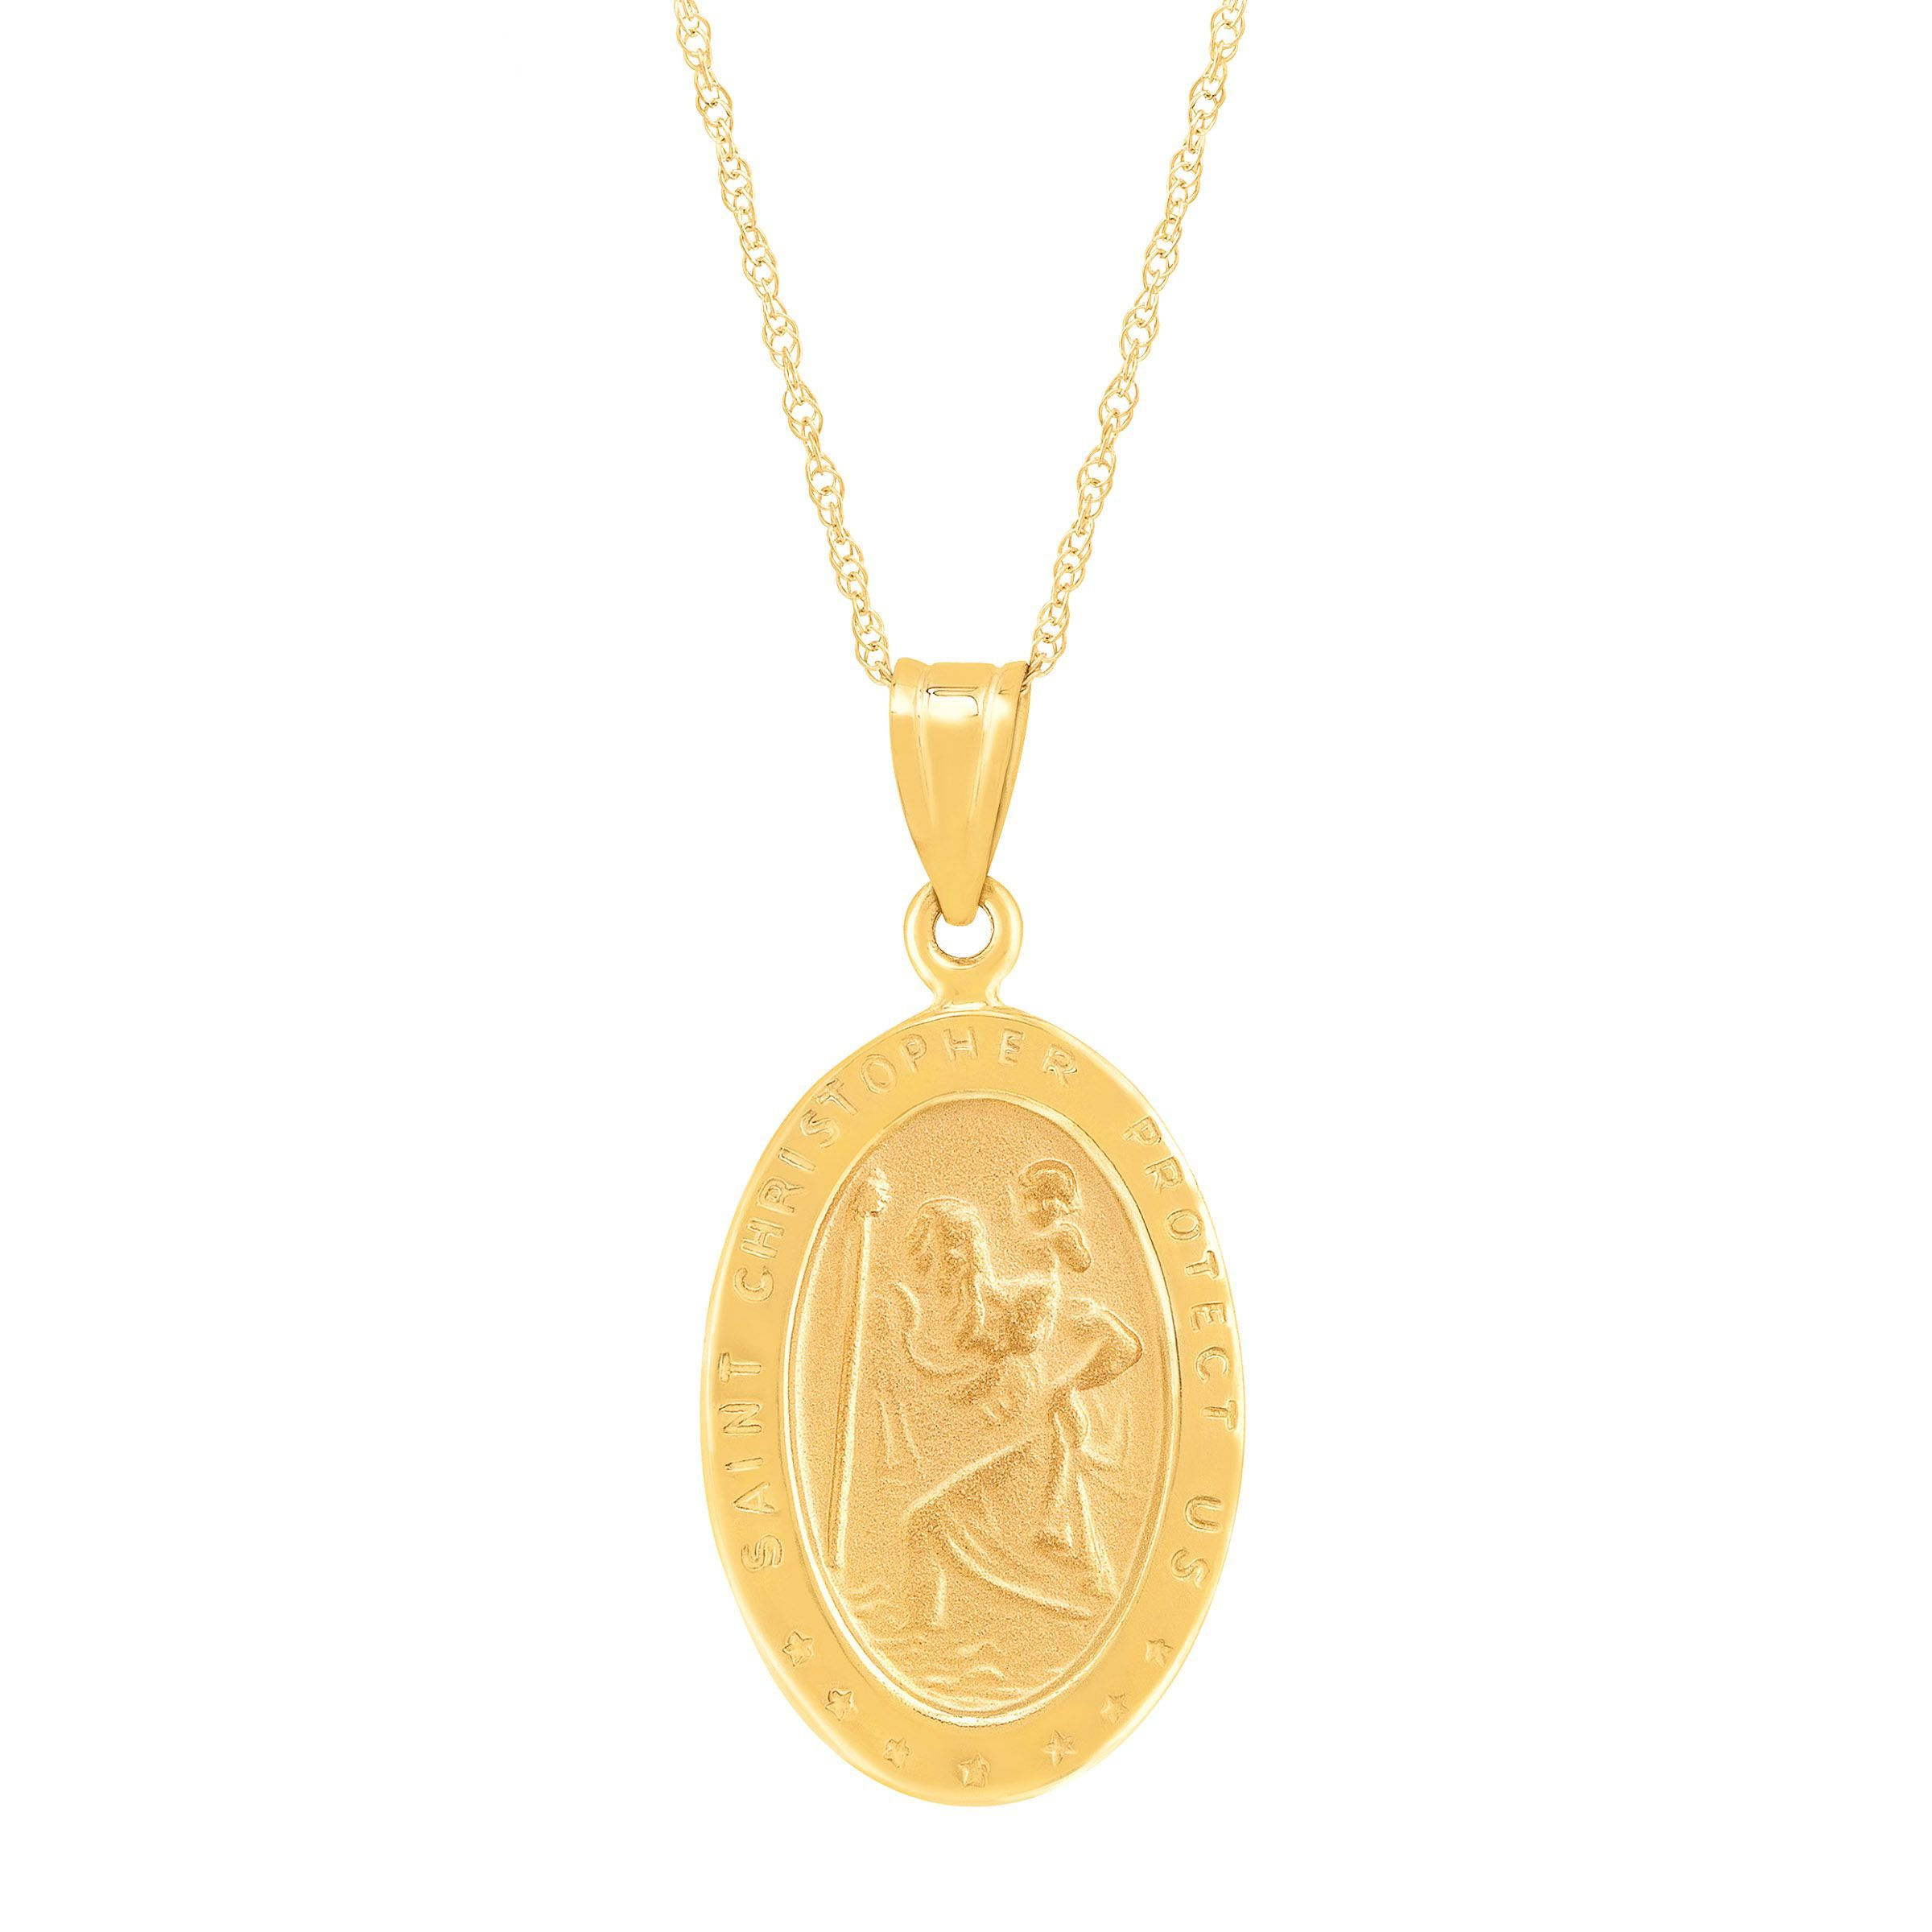 medallion pendant necklace store gold rose